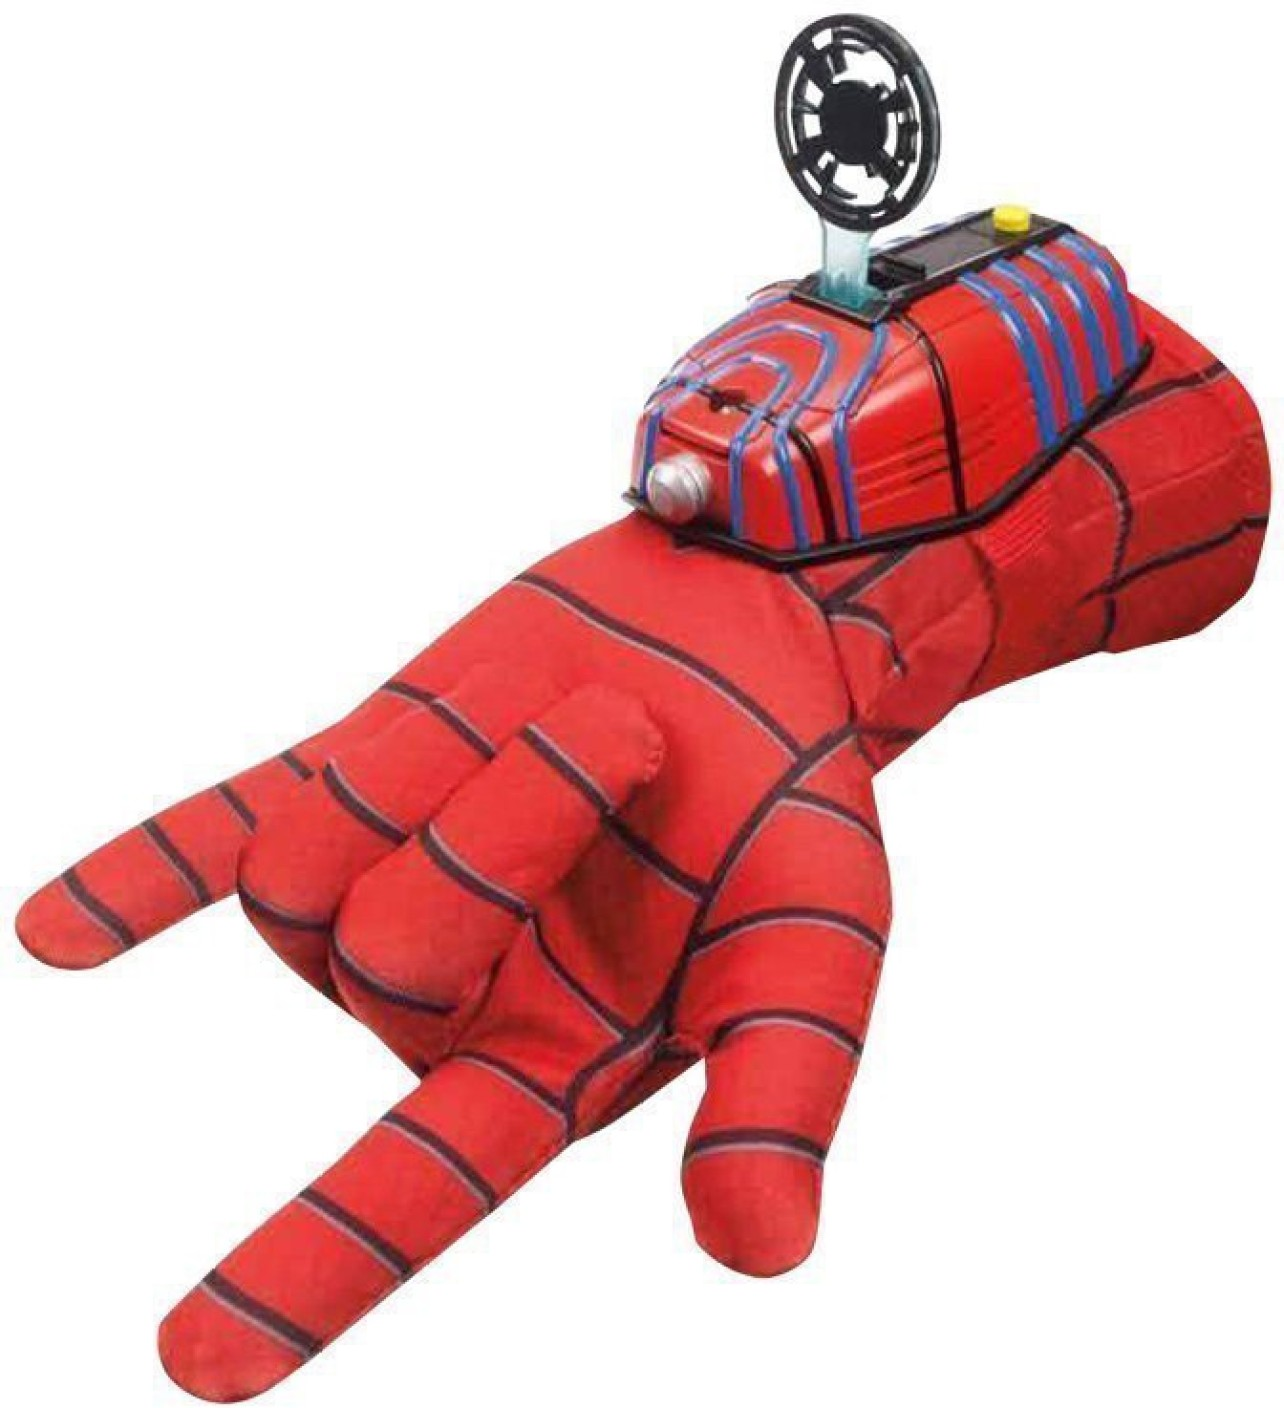 ar enterprises ultimate spiderman gloves with disc launcher for